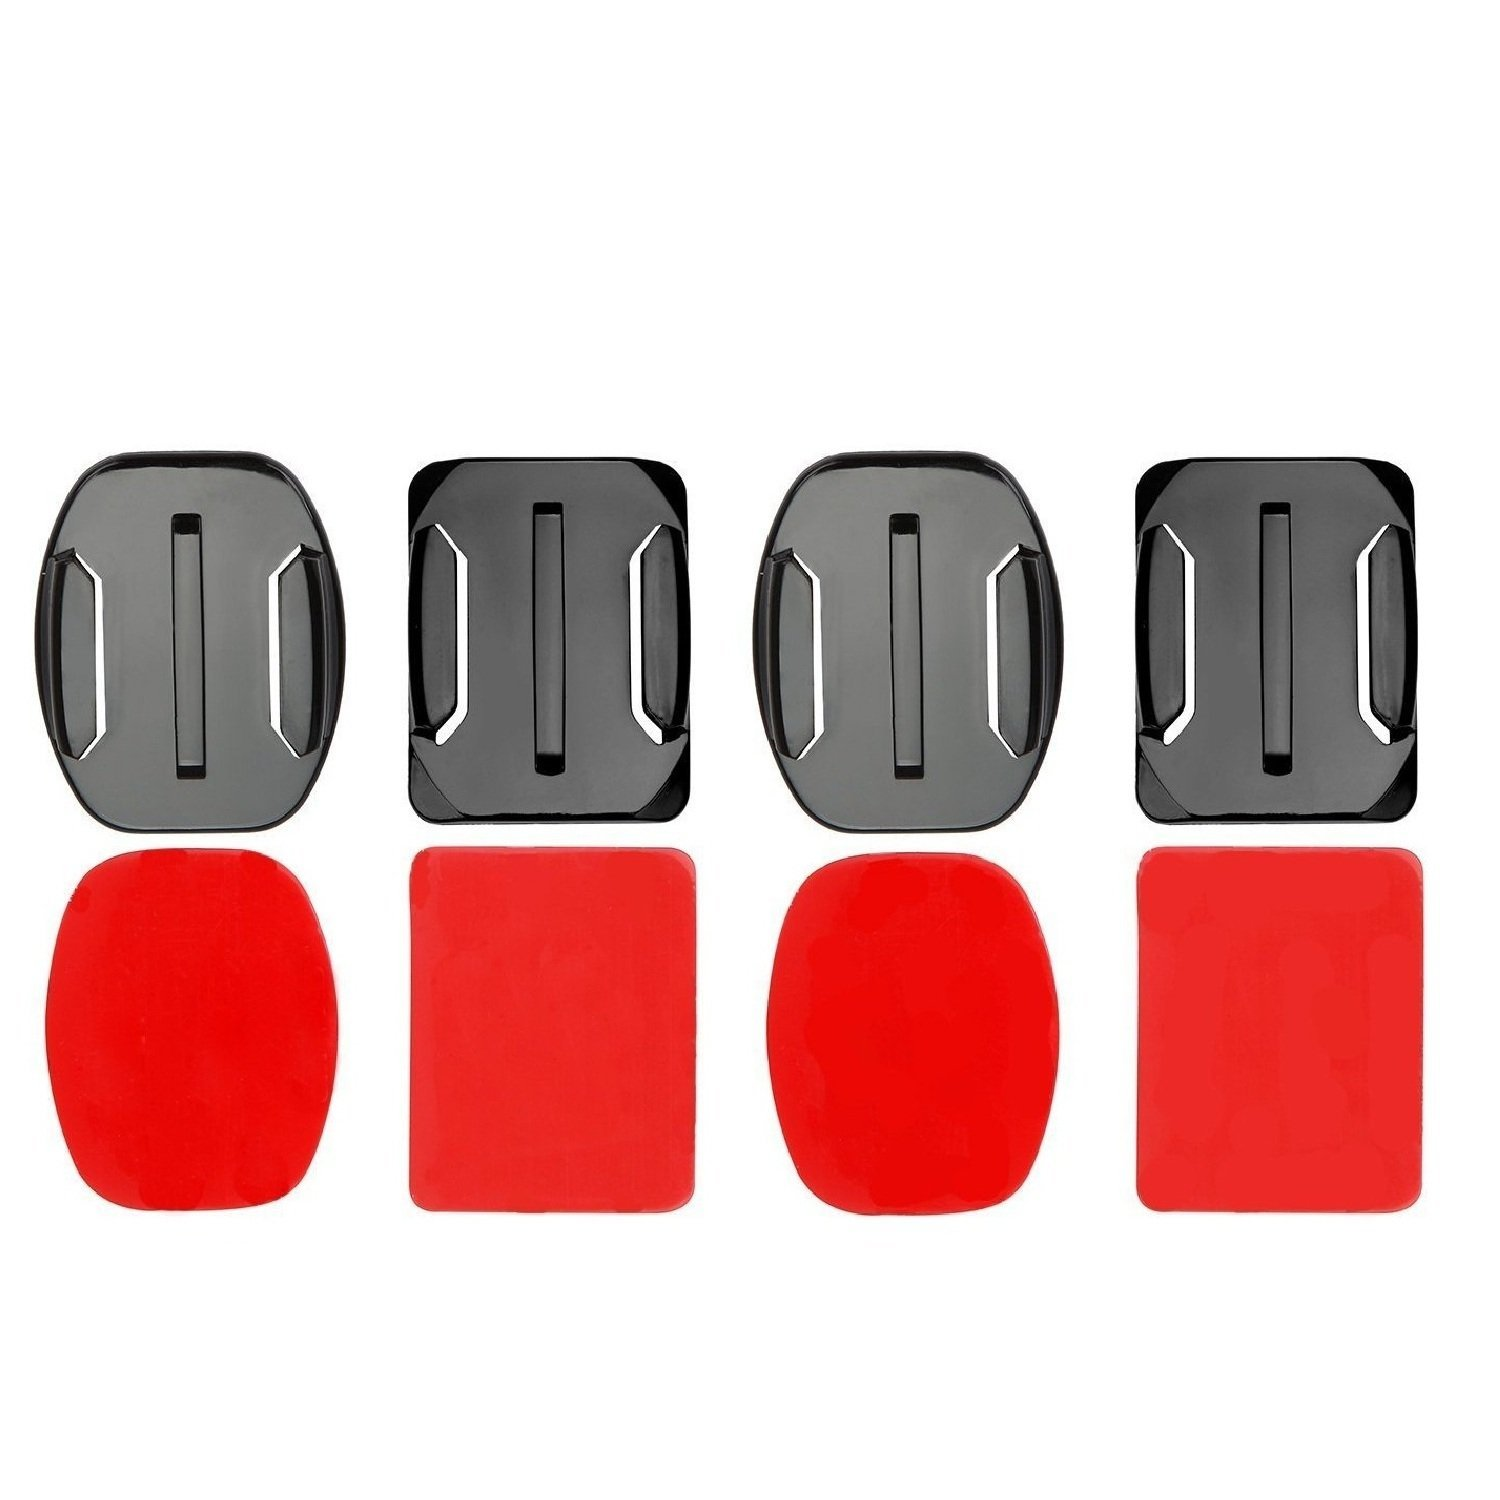 [Best Adhesive Mounts] Flat + Curved Adhesive Mounts with 3M Sticky Tape for Gopro / DBPOWER / AKASO / APEMAN Action Camera,Suitable for Helmet Skiboard Snowboard Surfboard(Camera not included)